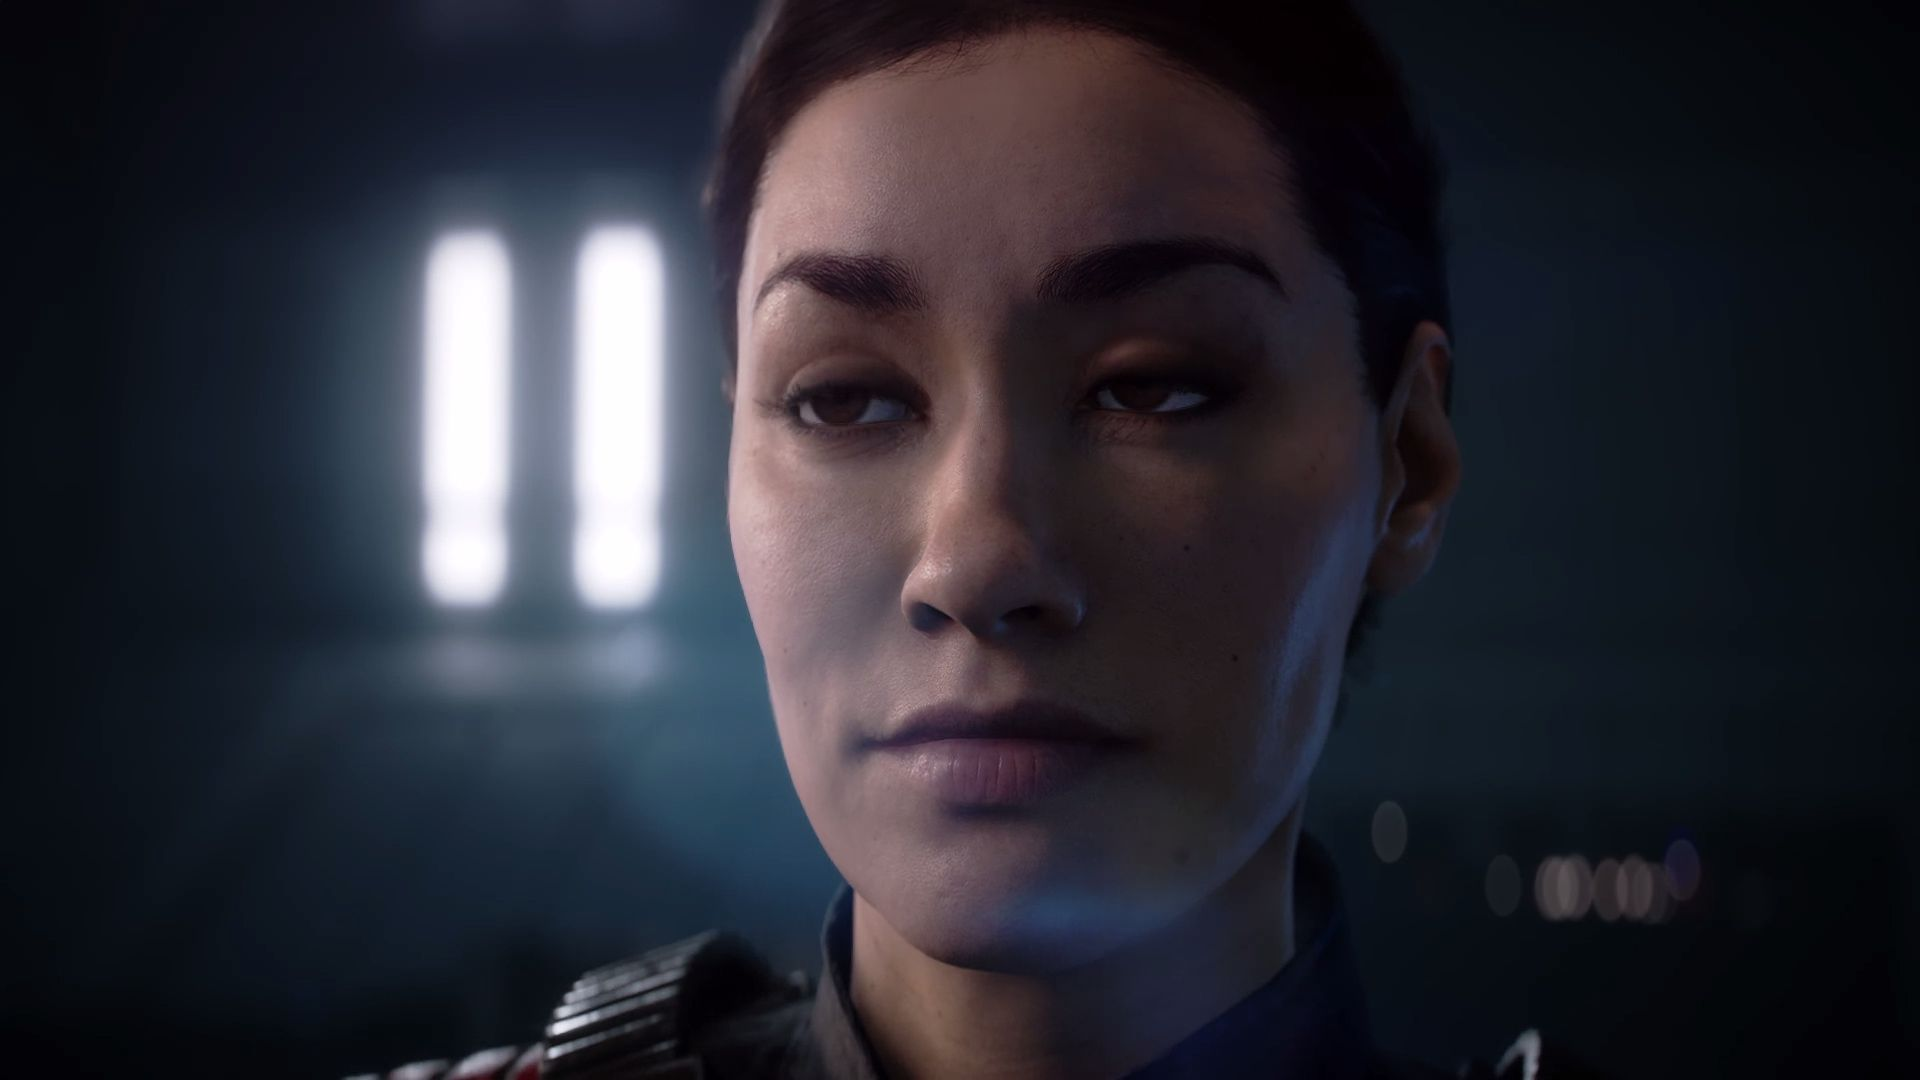 After Star Wars Battlefront 2 was given away by Epic, the servers crashed